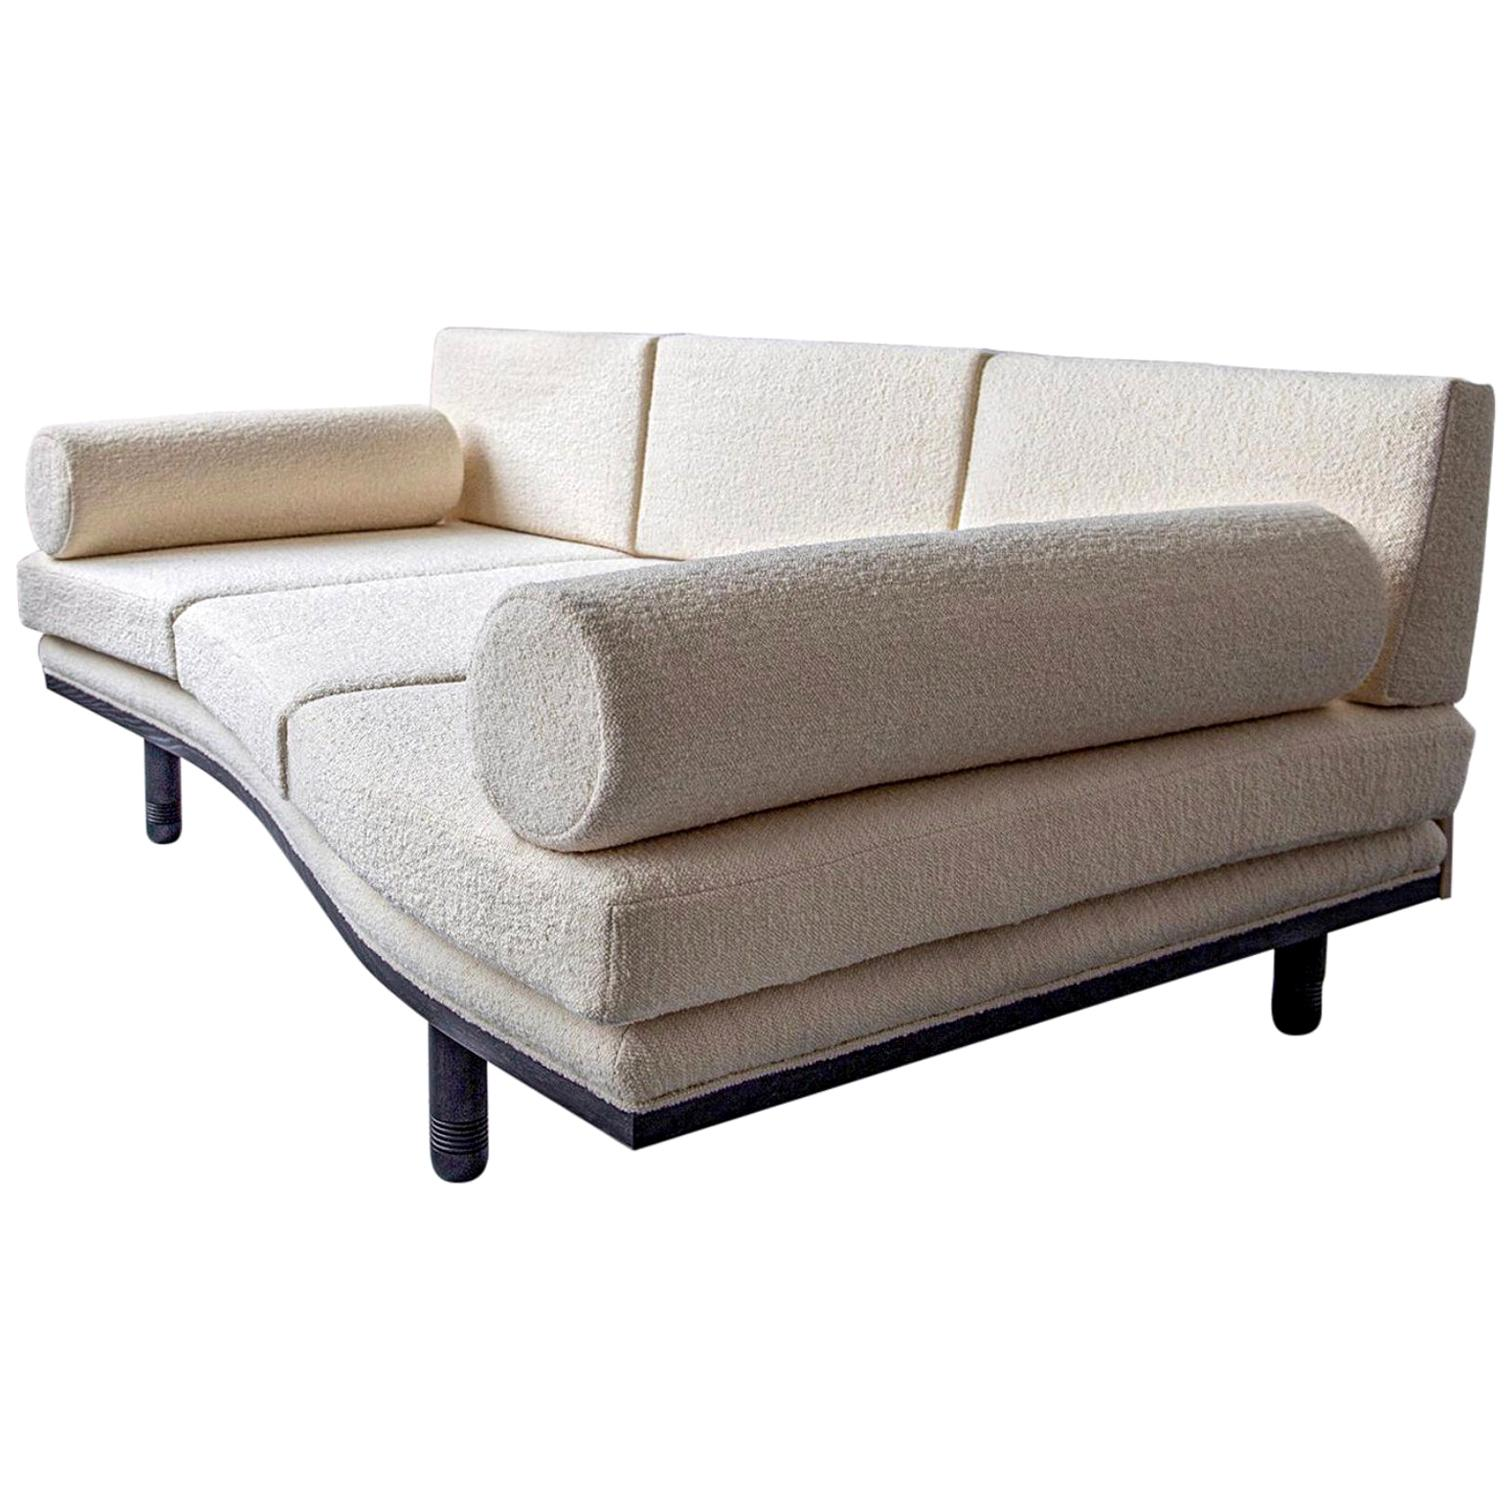 Baalbek, Trapezoidal Sofa Daybed by Toad Gallery, Contemporary Edition, 2020